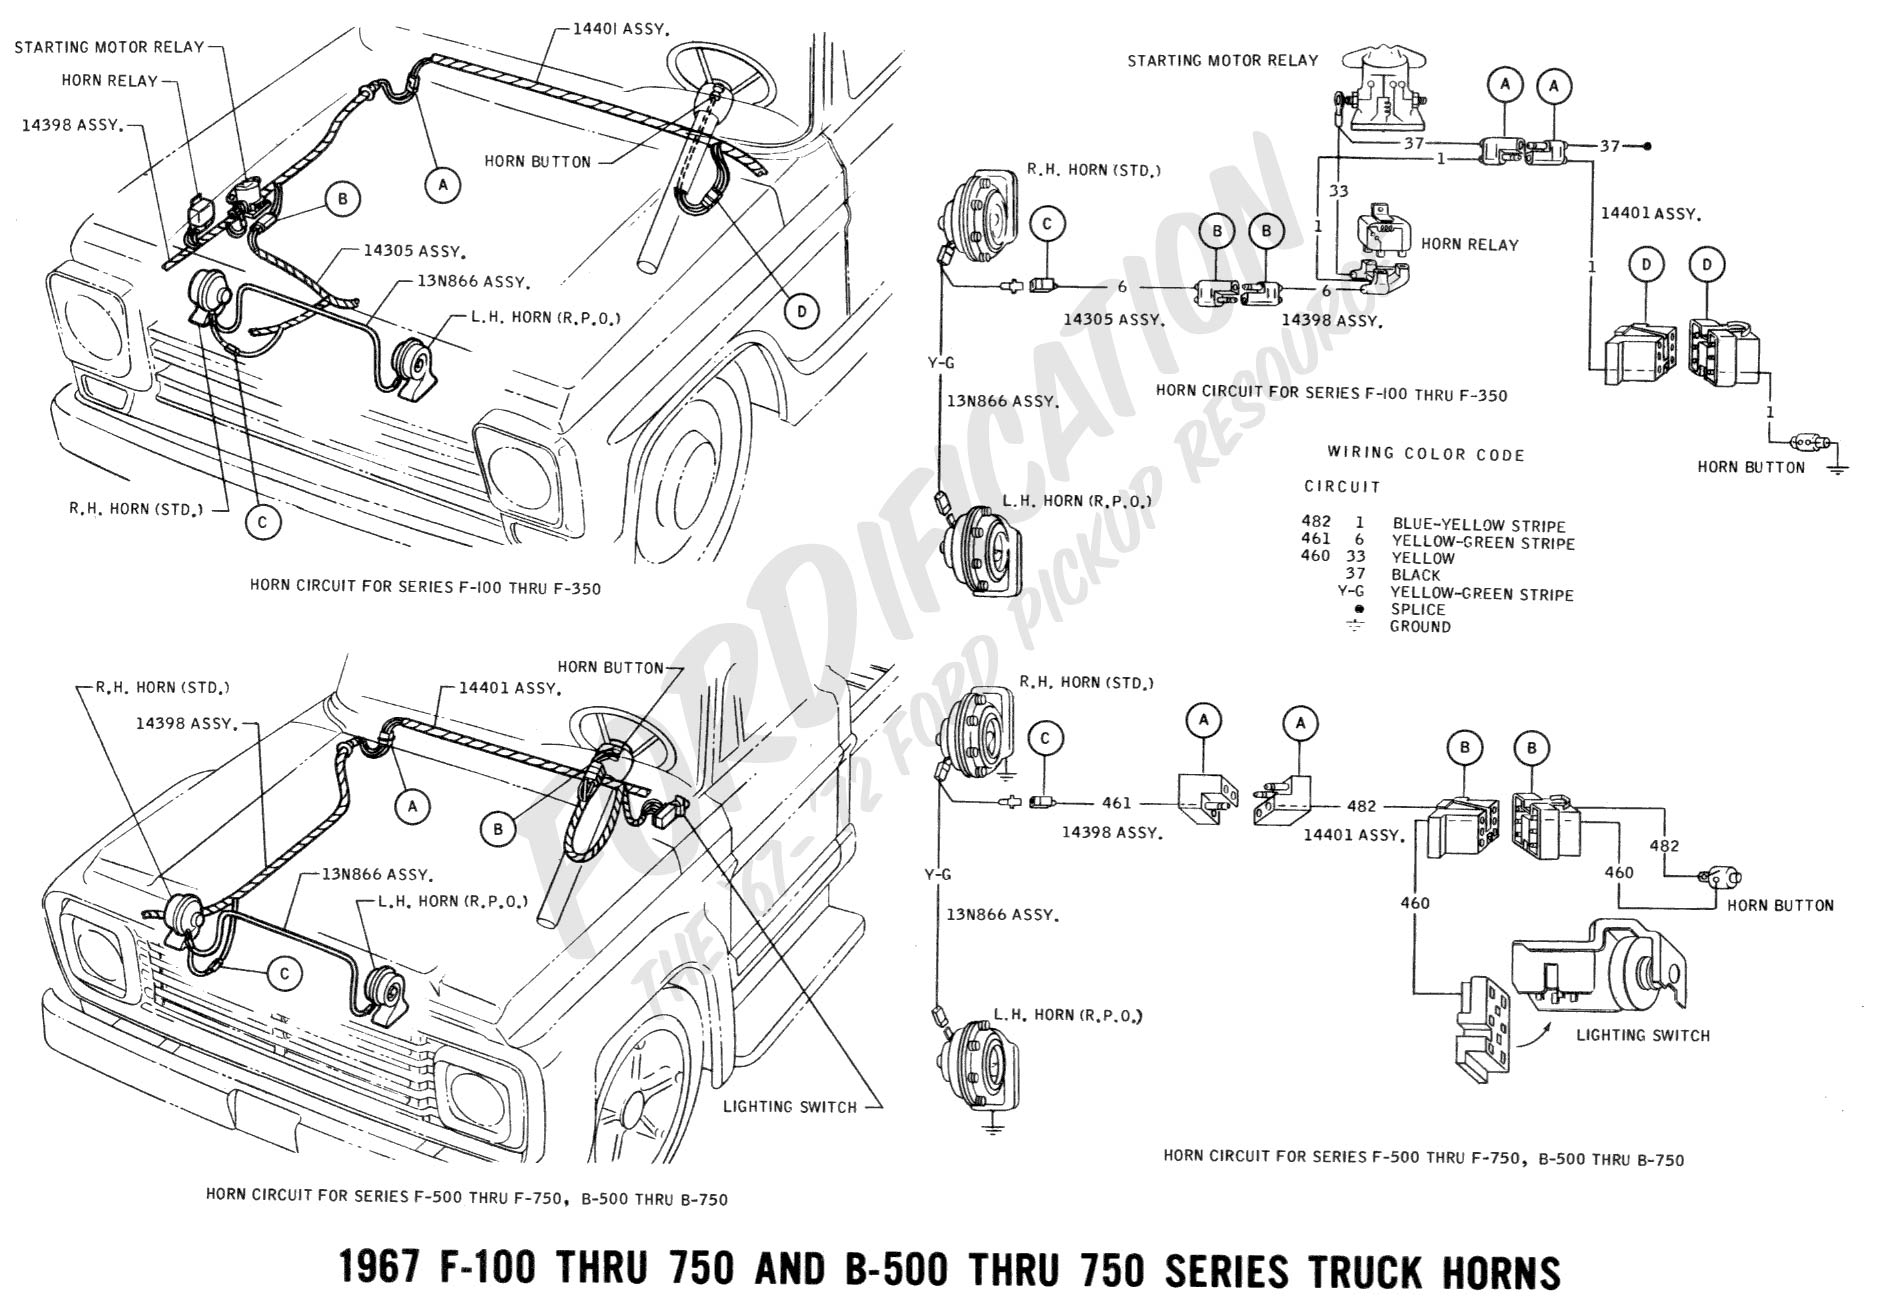 1965 Ford Truck Coil Wiring | Wiring Diagrams Ignition Switch Schematic on starter switch schematic, fuel gauge schematic, high voltage switch schematic, oil switch schematic, electrical switch schematic, alternator schematic, speed switch schematic, fuel injector schematic, pressure transmitter symbol schematic, transmission schematic, 3 position switch schematic, master cylinder schematic, relay schematic, ignition timing, ignition diagram, fan blade schematic, generator schematic, 3 wire thermocouple wiring schematic, engine schematic, vacuum pump schematic,